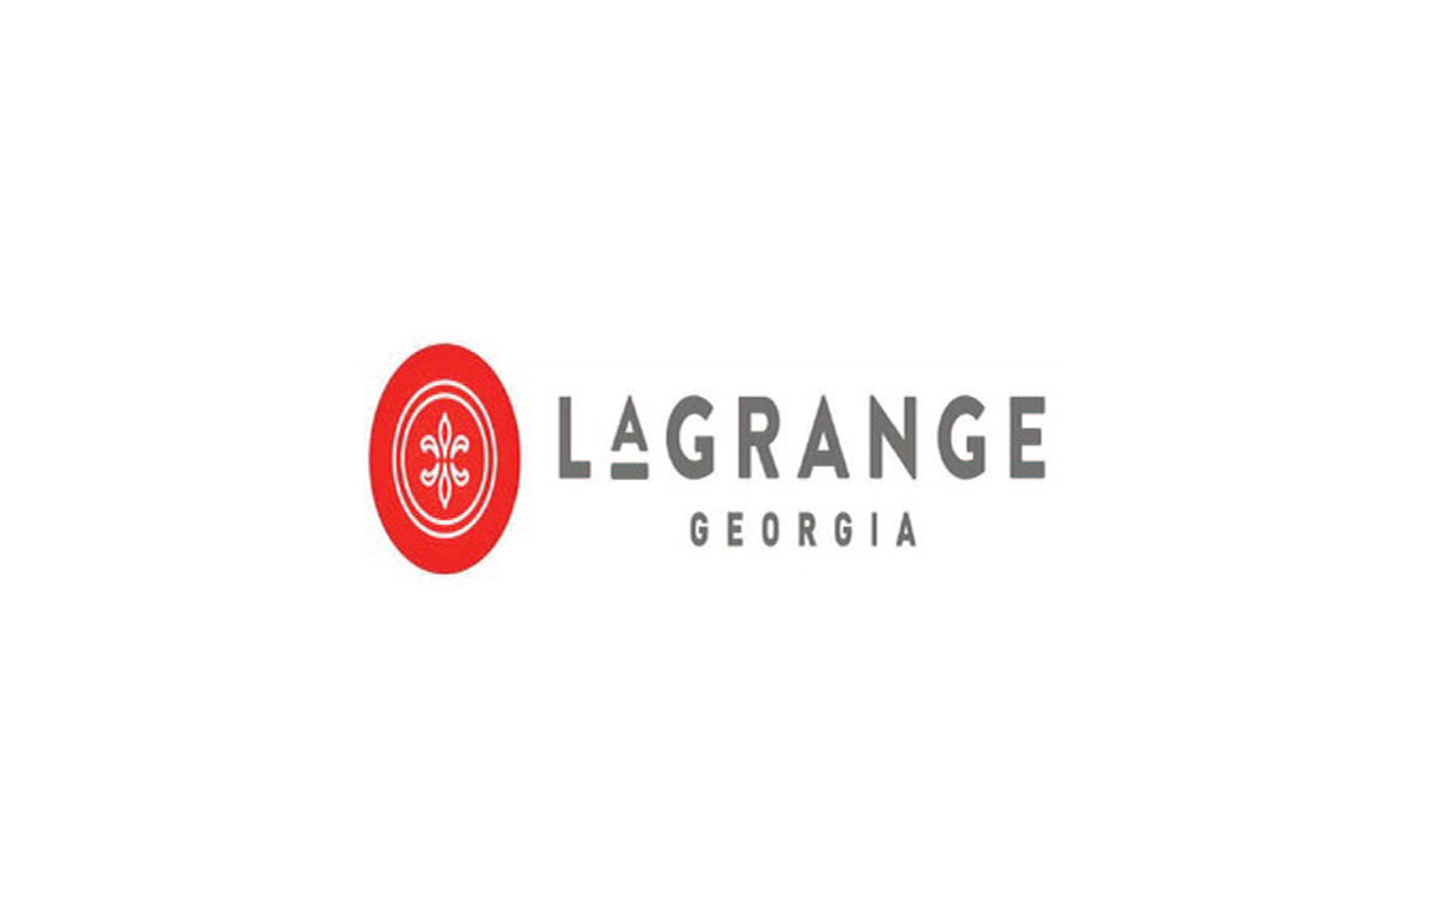 LaGrange Votes to End Tourism  Agreement with Chamber of Commerce